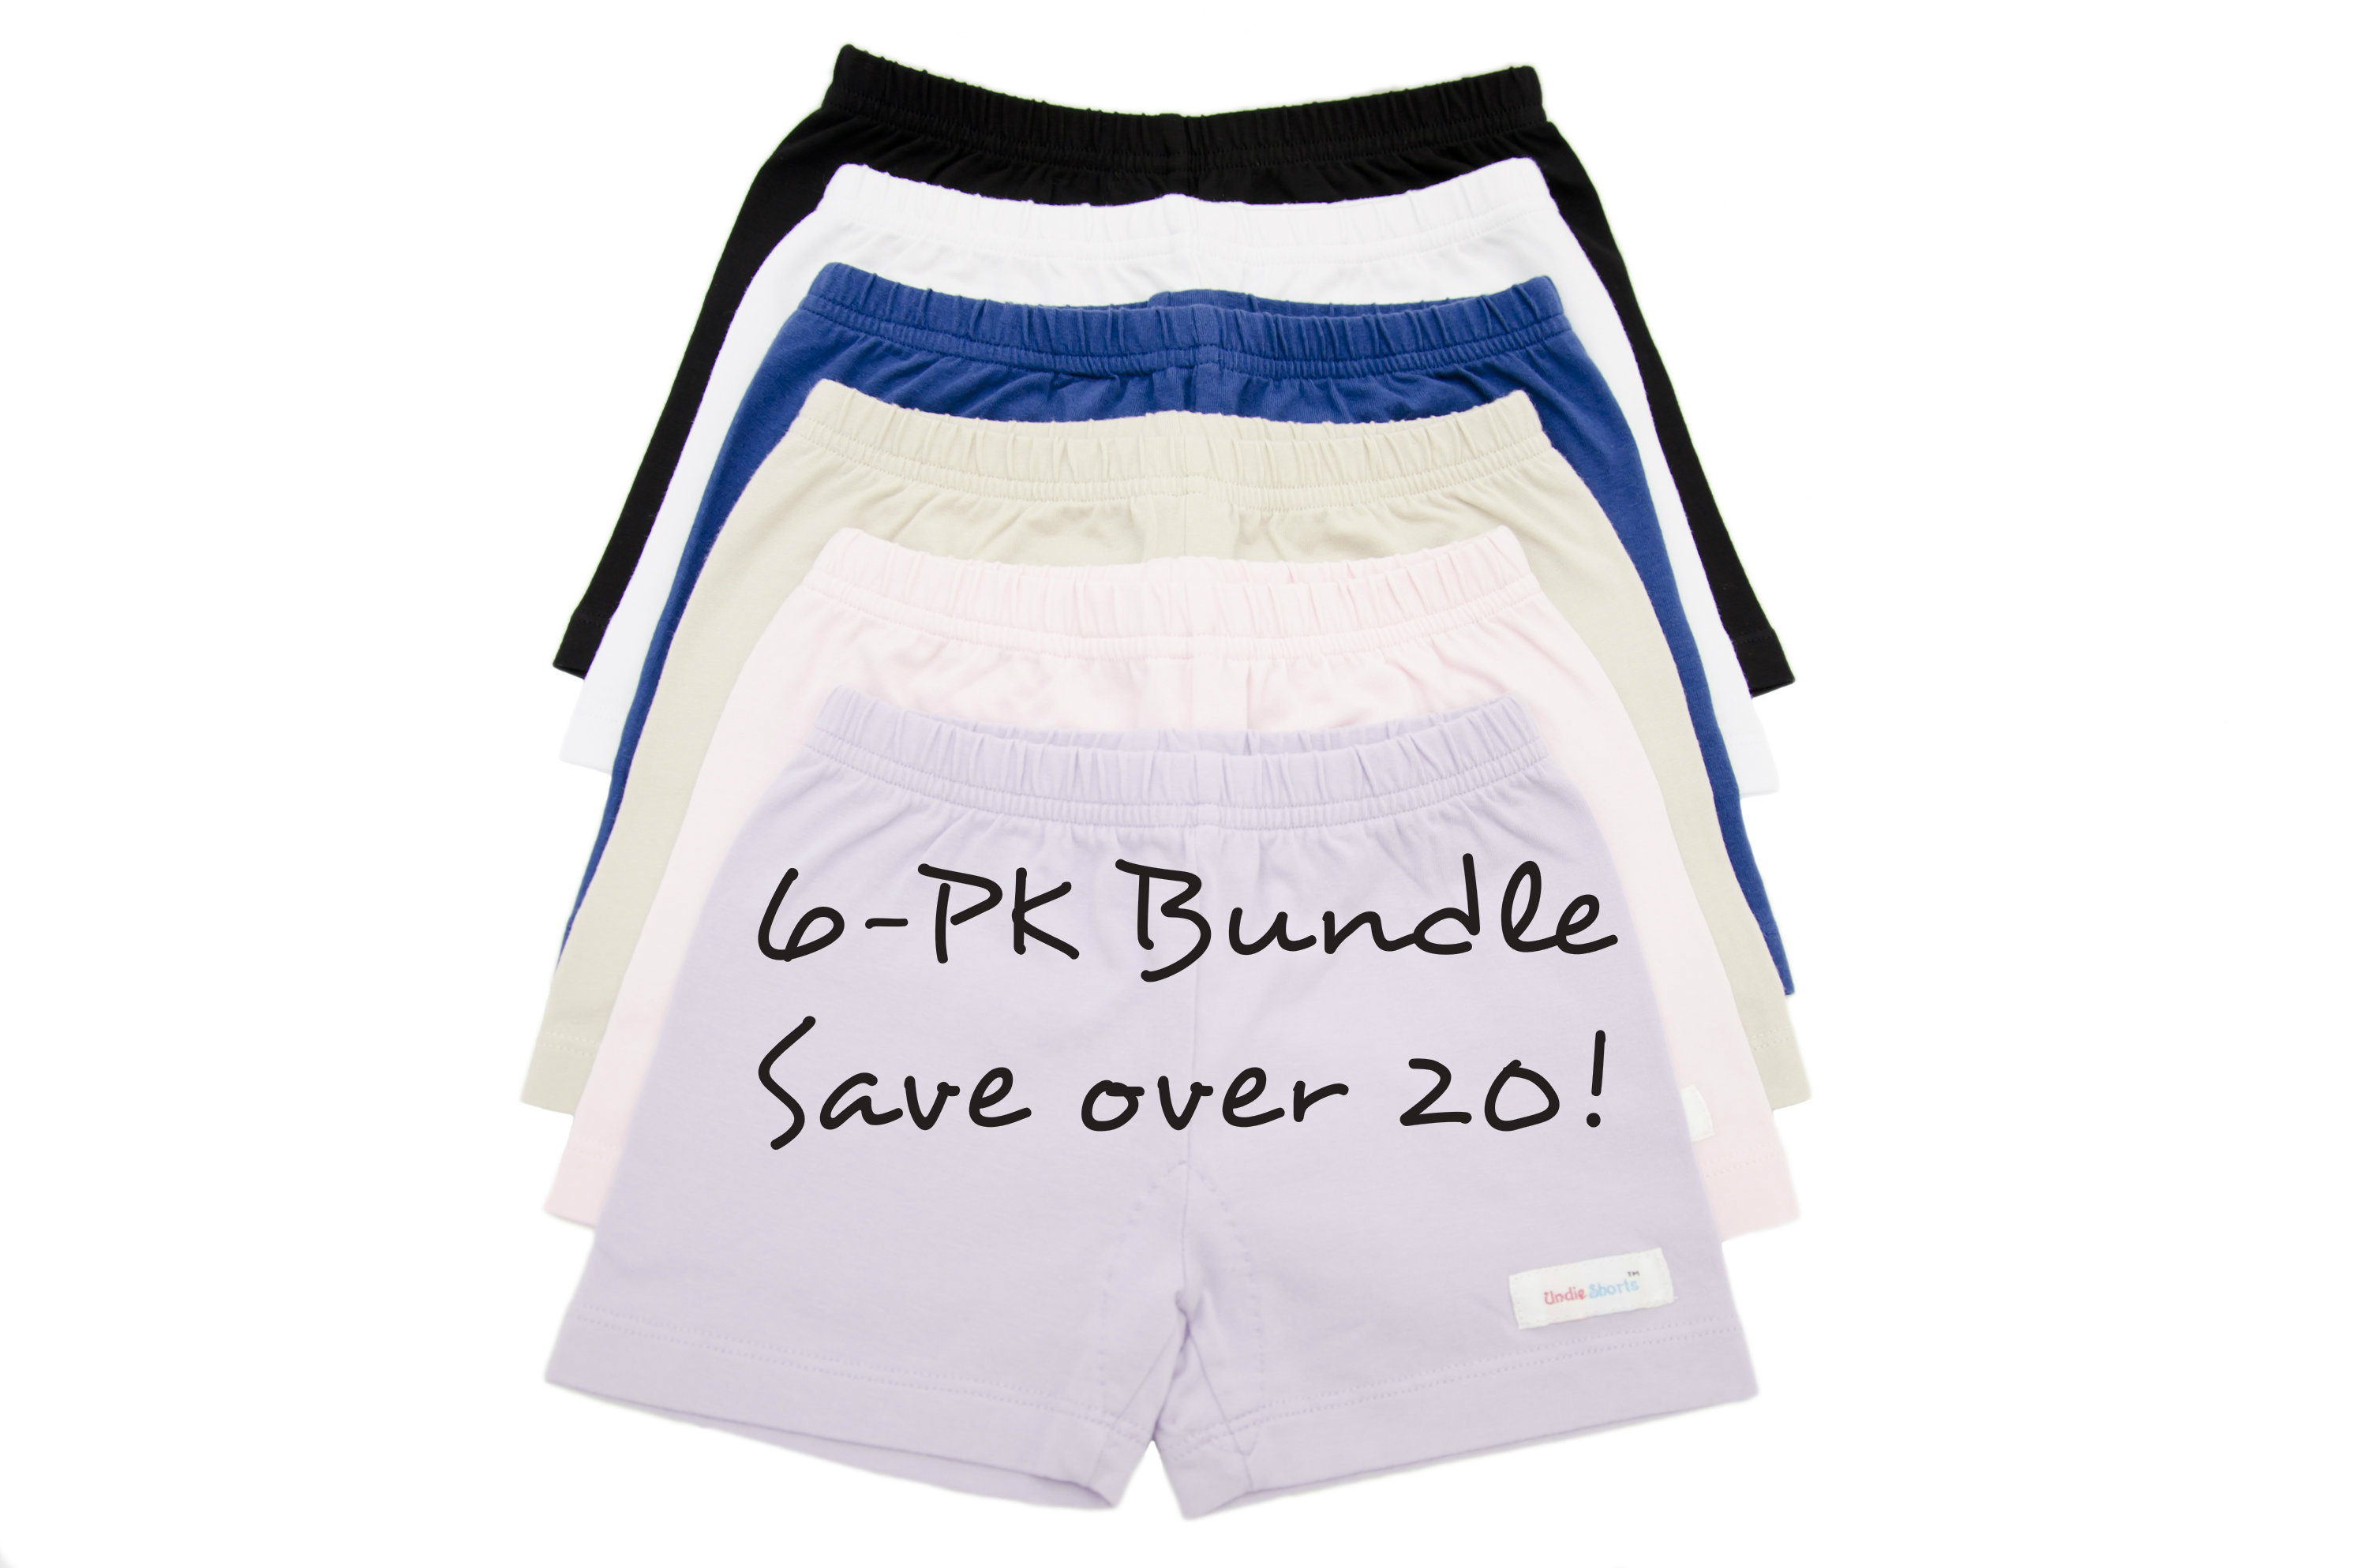 girls cotton knit modesty under shorts for wearing under dresses 6-pk bundle